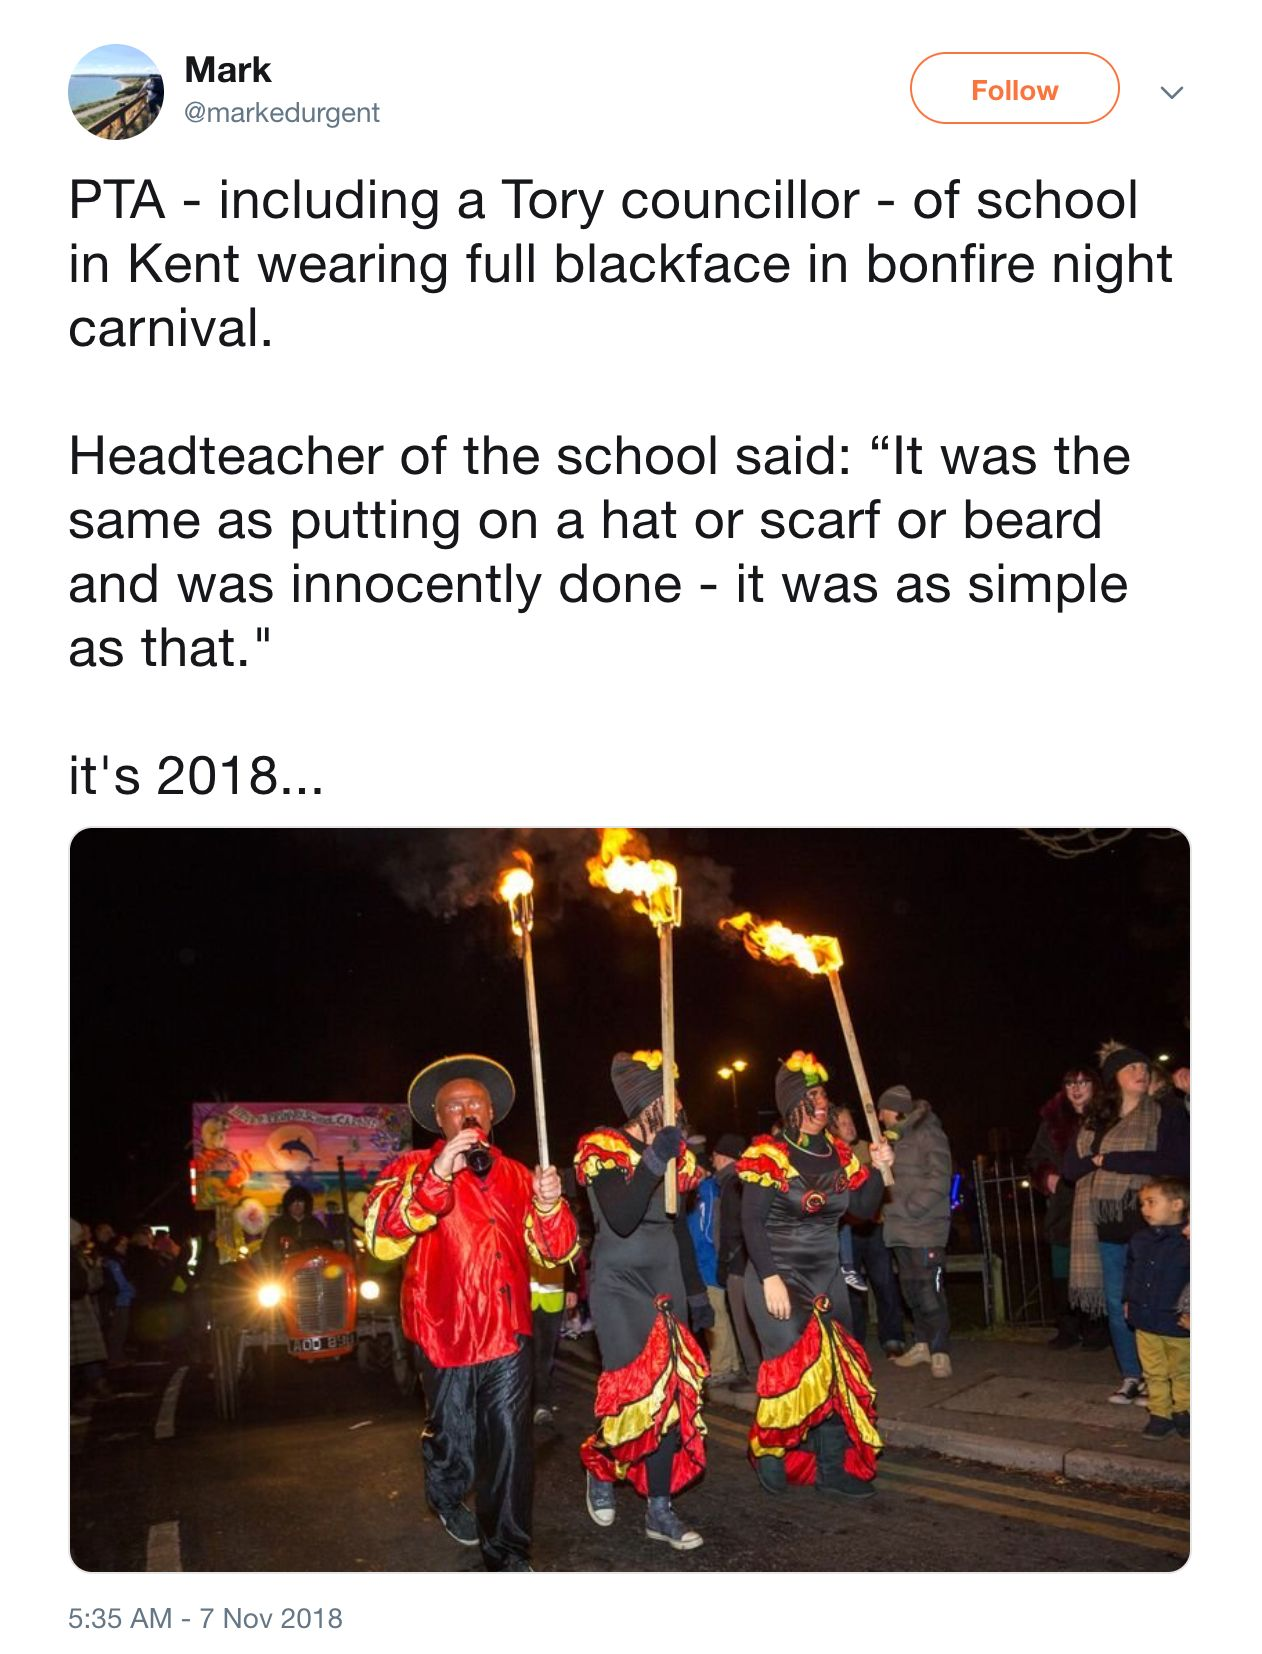 Tory Councillor Among Parents Who 'Blacked Up' For Bonfire